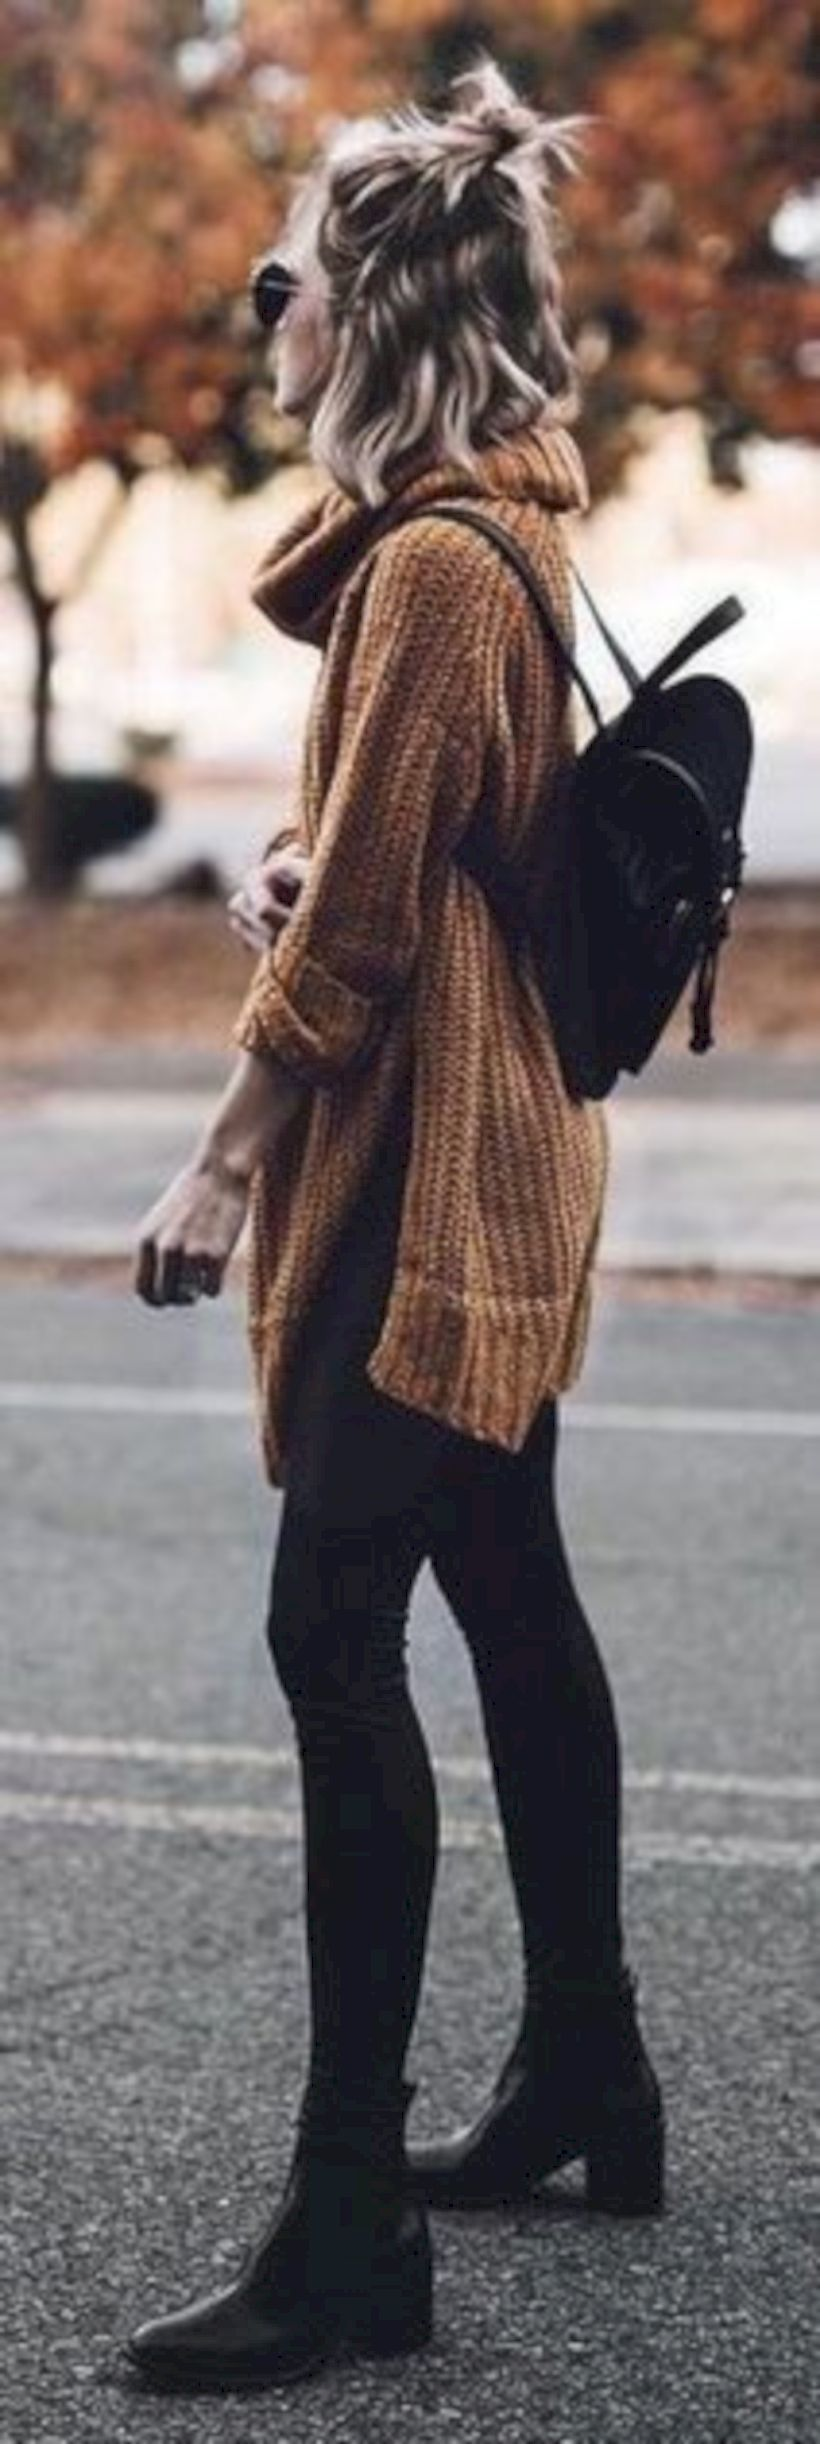 40 Cool Winter Outfits for Going Out 2019 is part of Clothes Winter Going Out - Battling the forlornness of winter is simpler than you may think  It's extremely essential for you to have warm clothes in winters  Winters are the time when you'd want to take a seat beside the bornfire and delight in the cool breeze below the sky